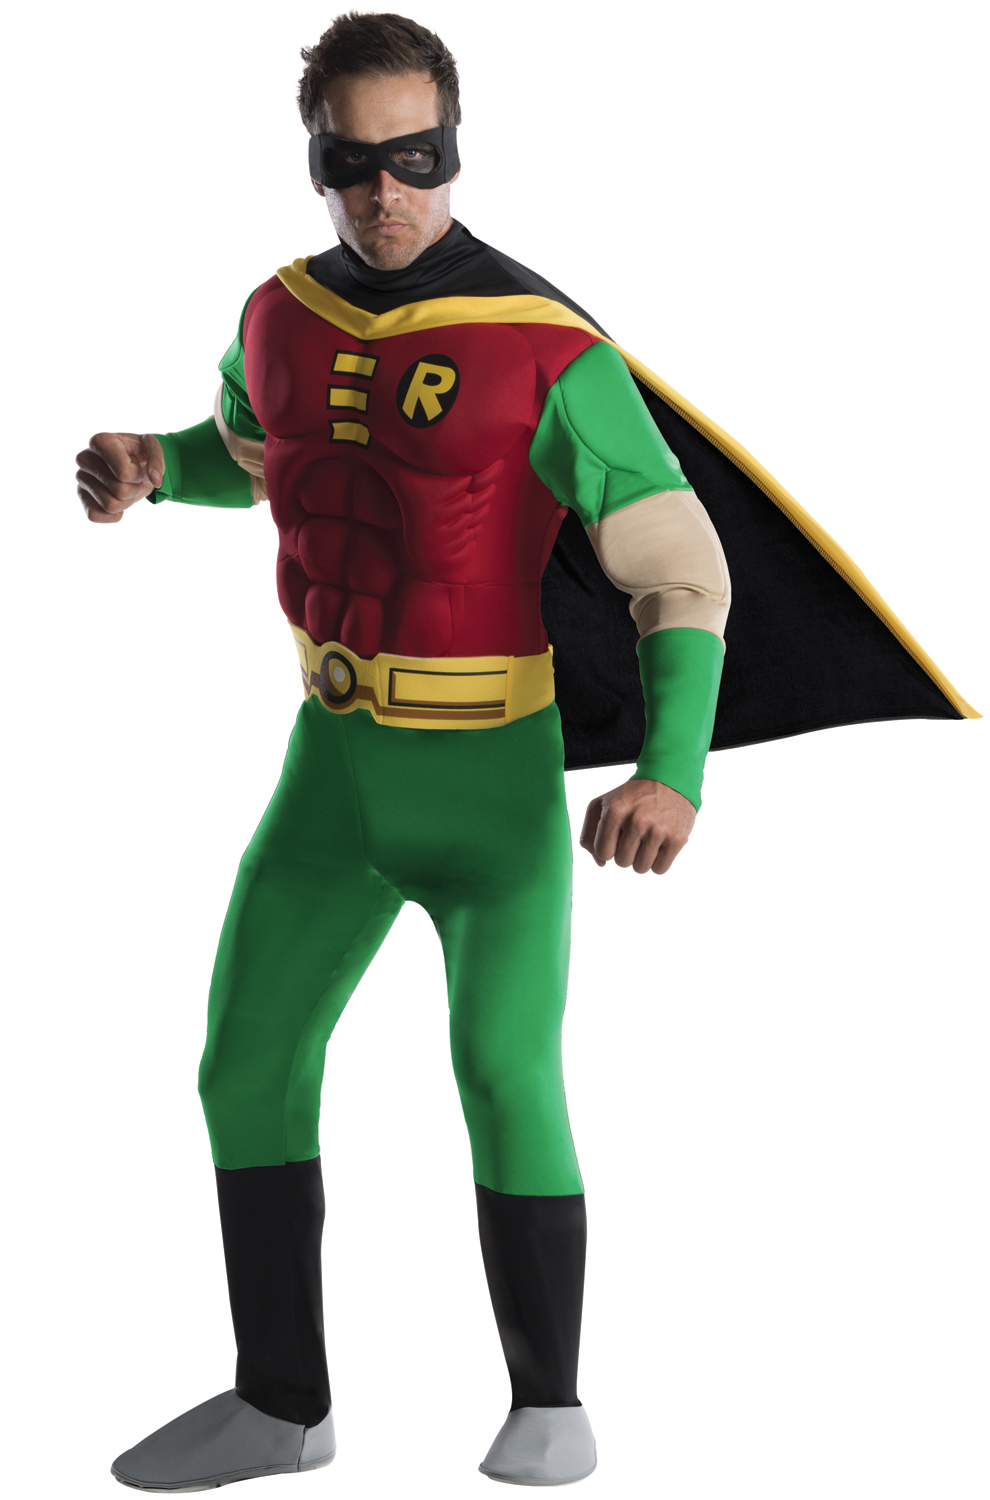 Teen Titans Deluxe Muscle Chest Robin Adult Costume  sc 1 st  Pure Costumes & Teen Titans Deluxe Muscle Chest Robin Adult Costume - PureCostumes.com